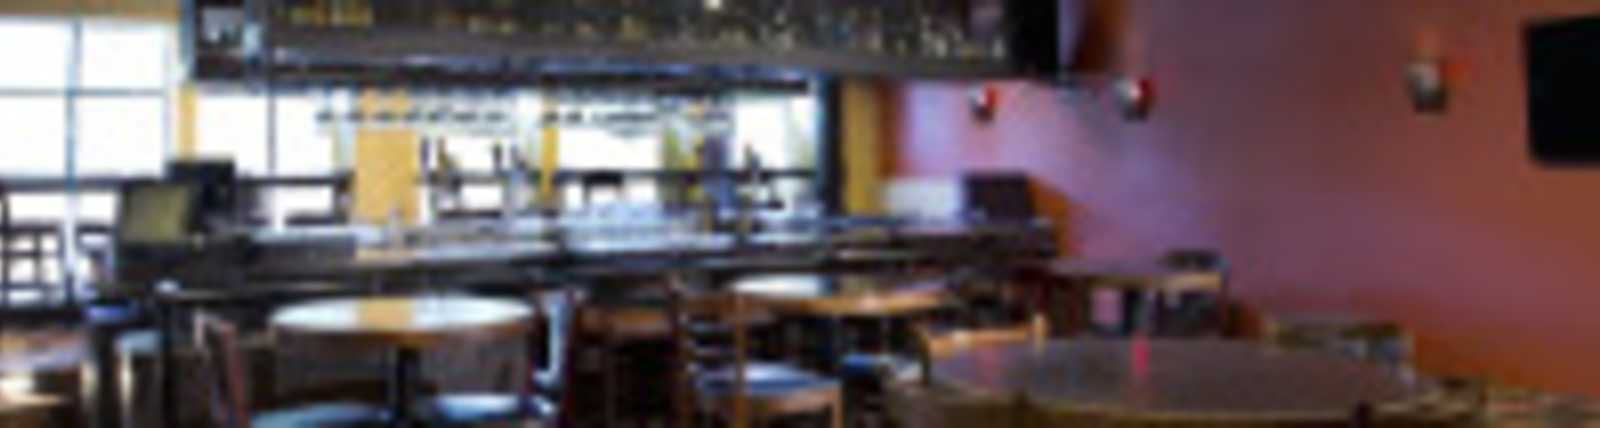 Gregory's Bar & Grill